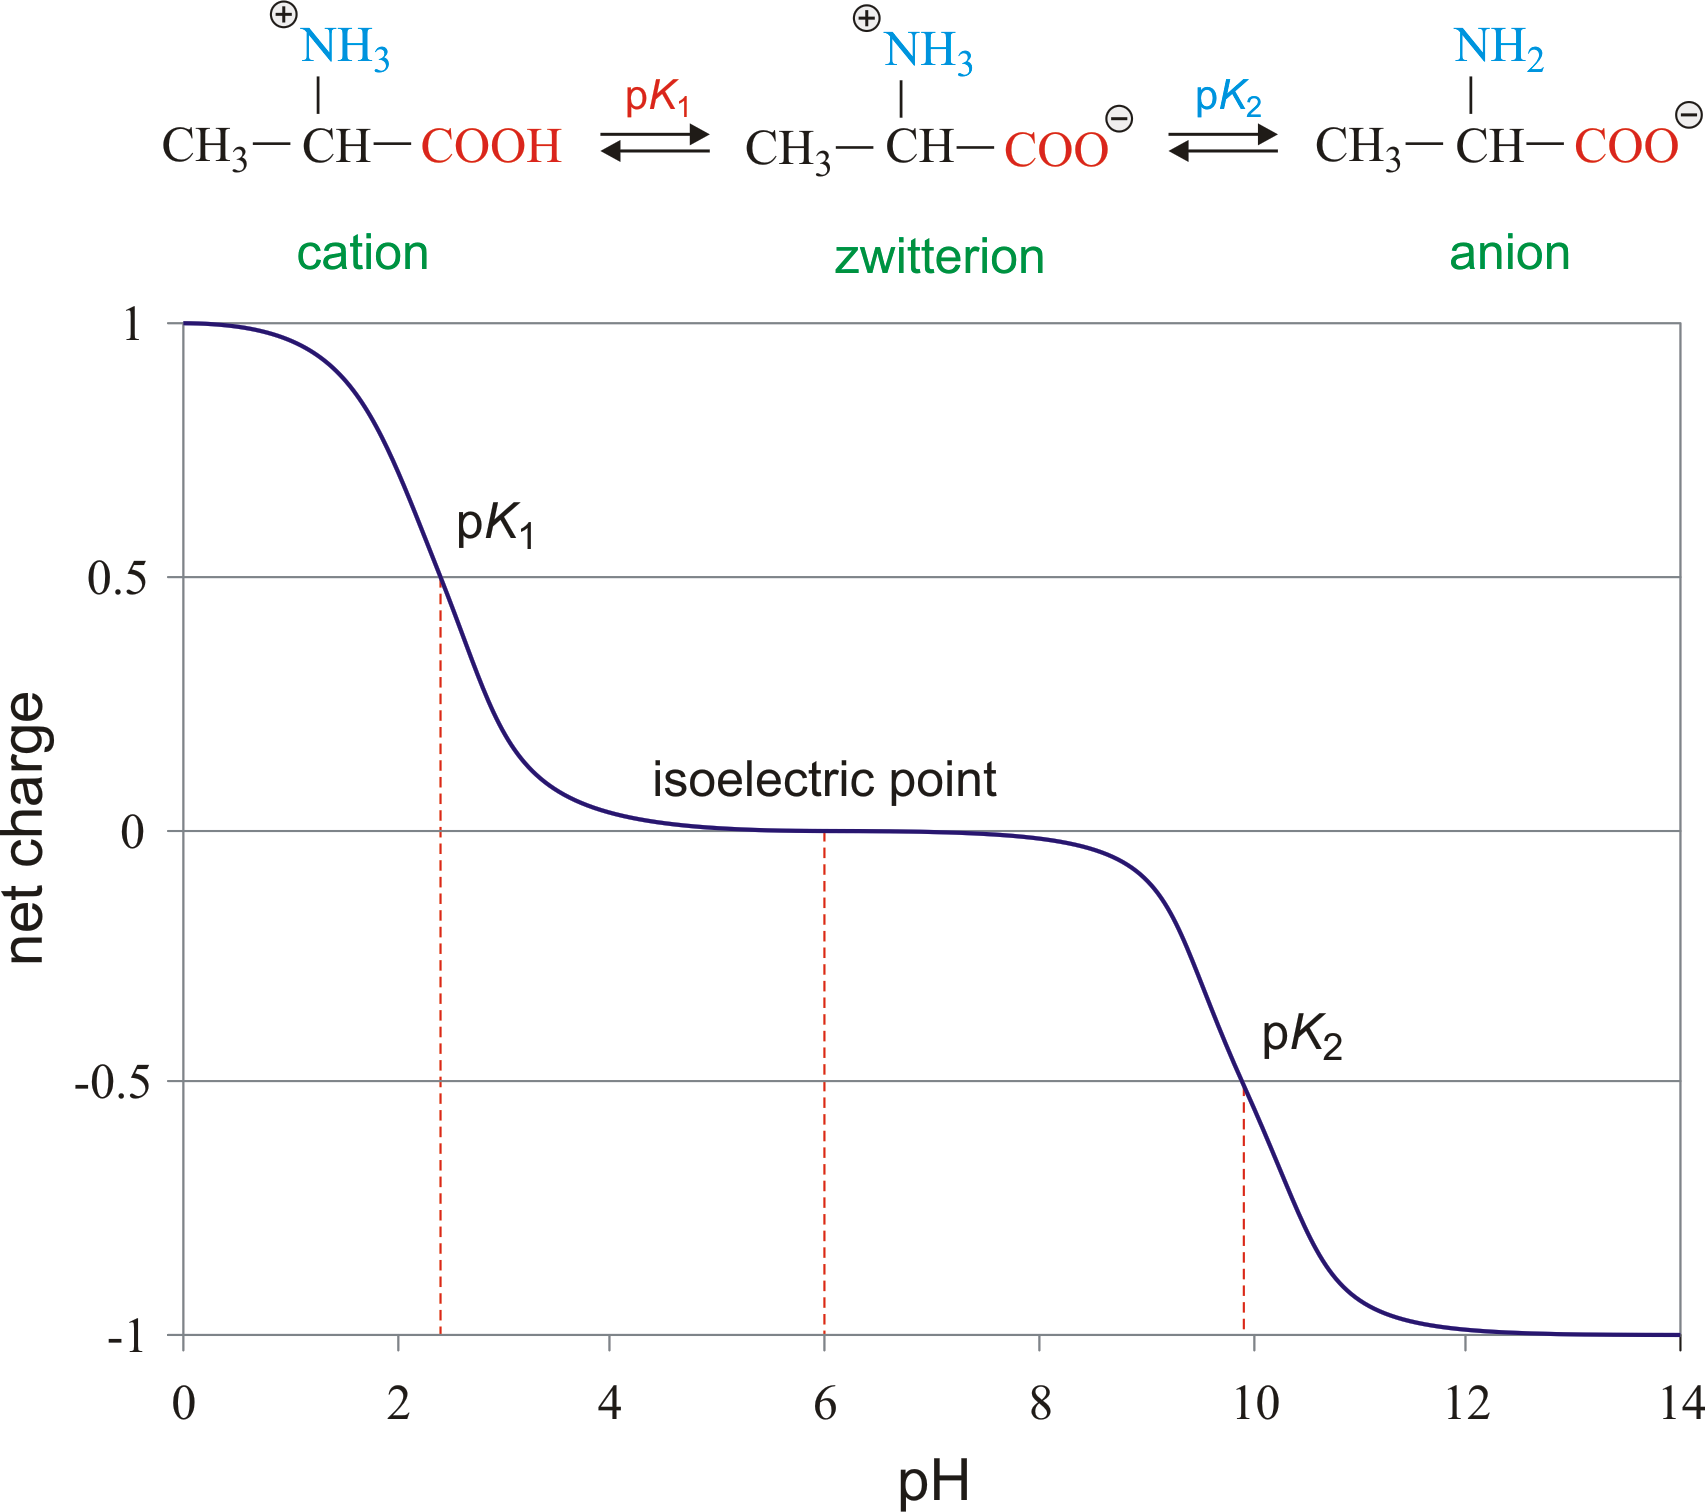 Isoelectric point